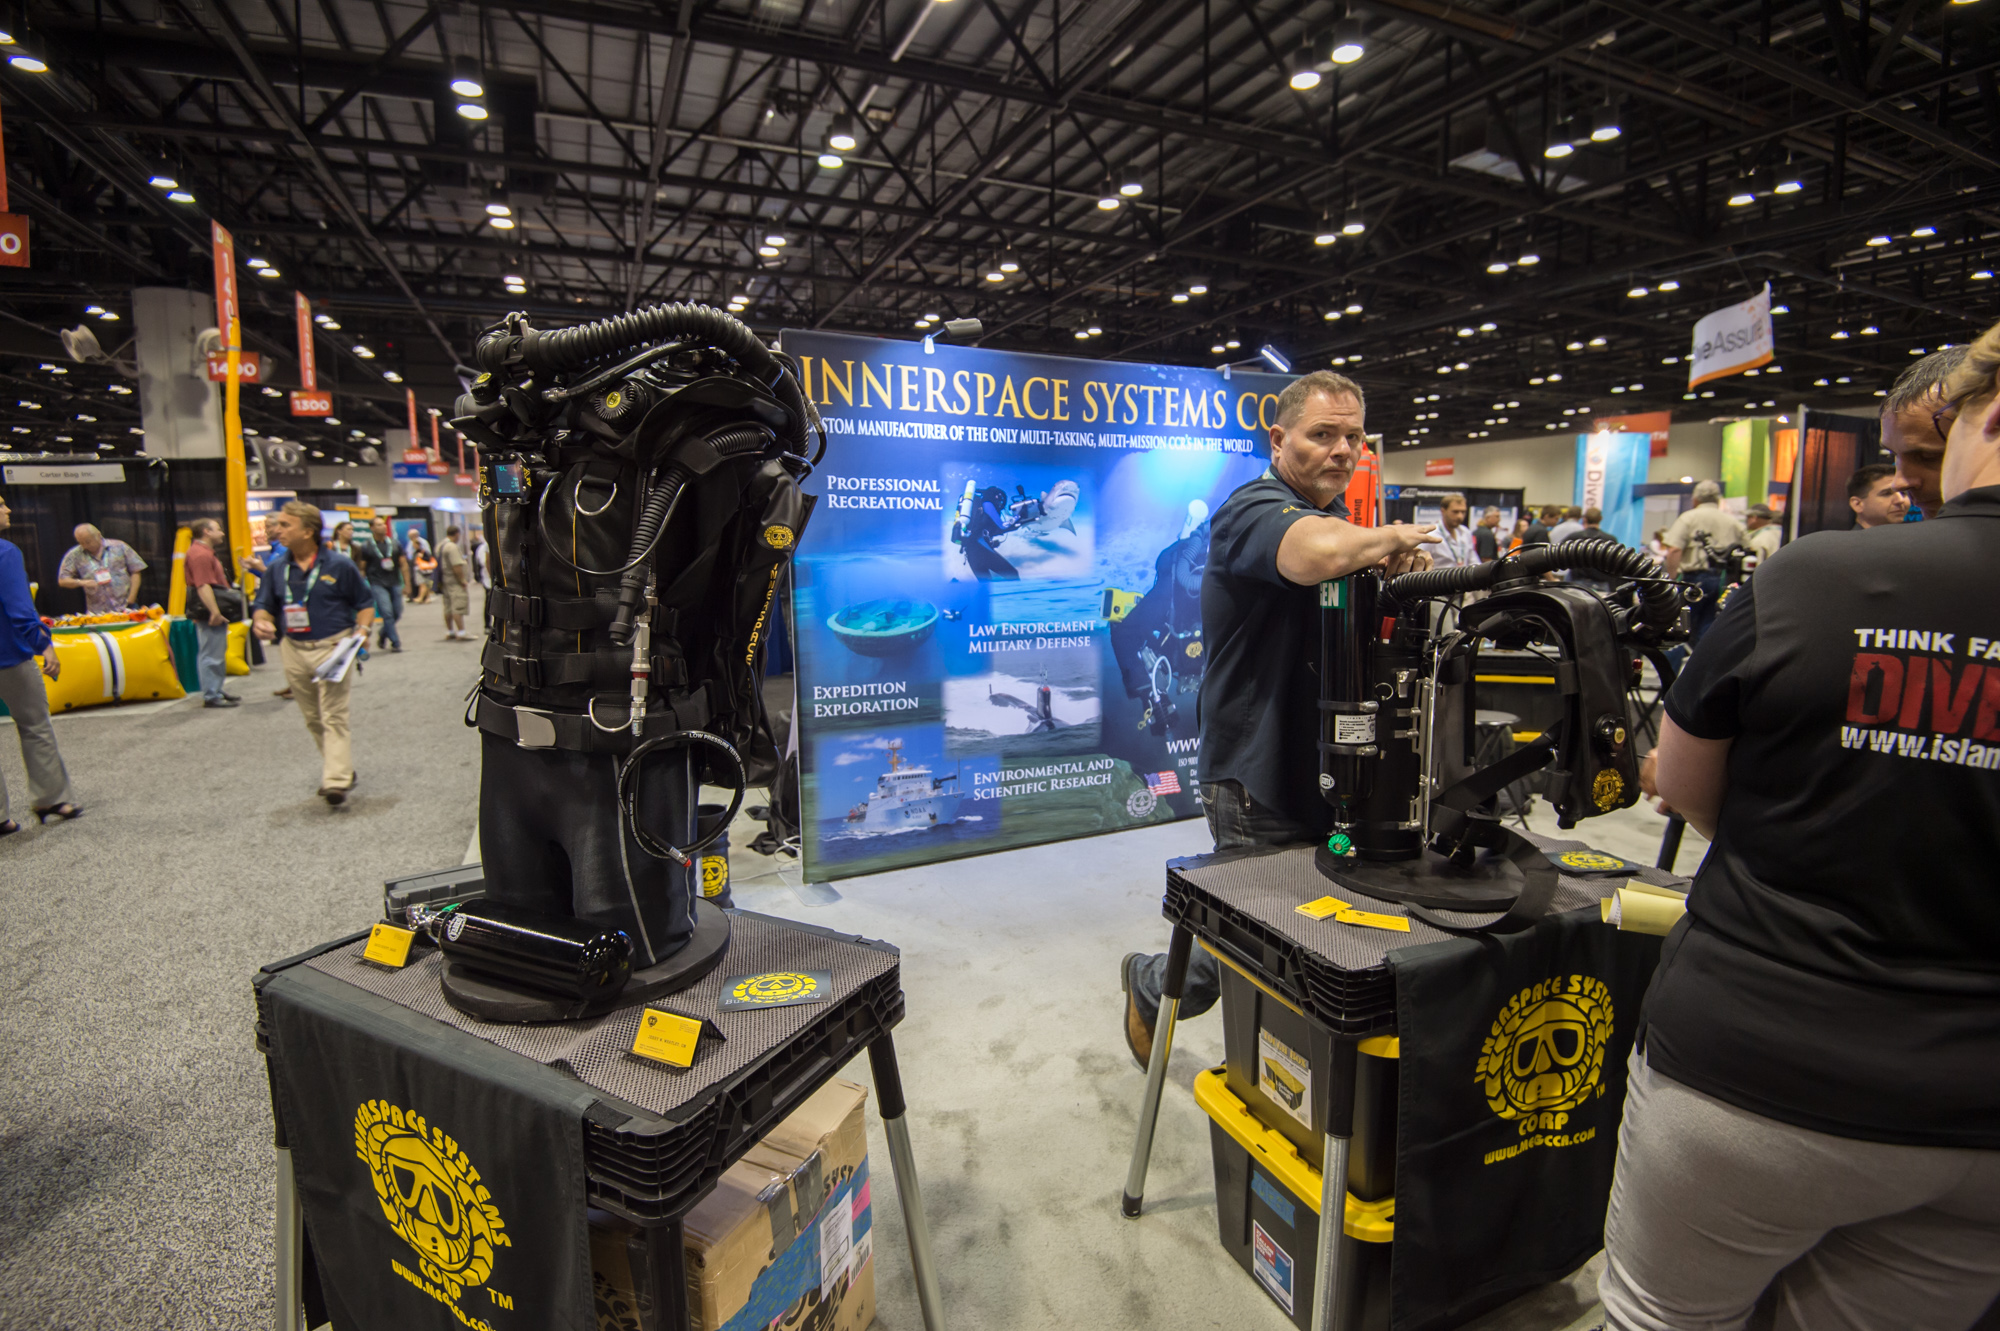 ISC makes the bulletproof Megalodon and Pathfinder CCRs, but have some stiff competition from the likes of Hollis, rEvo, and the JJ rebreathers